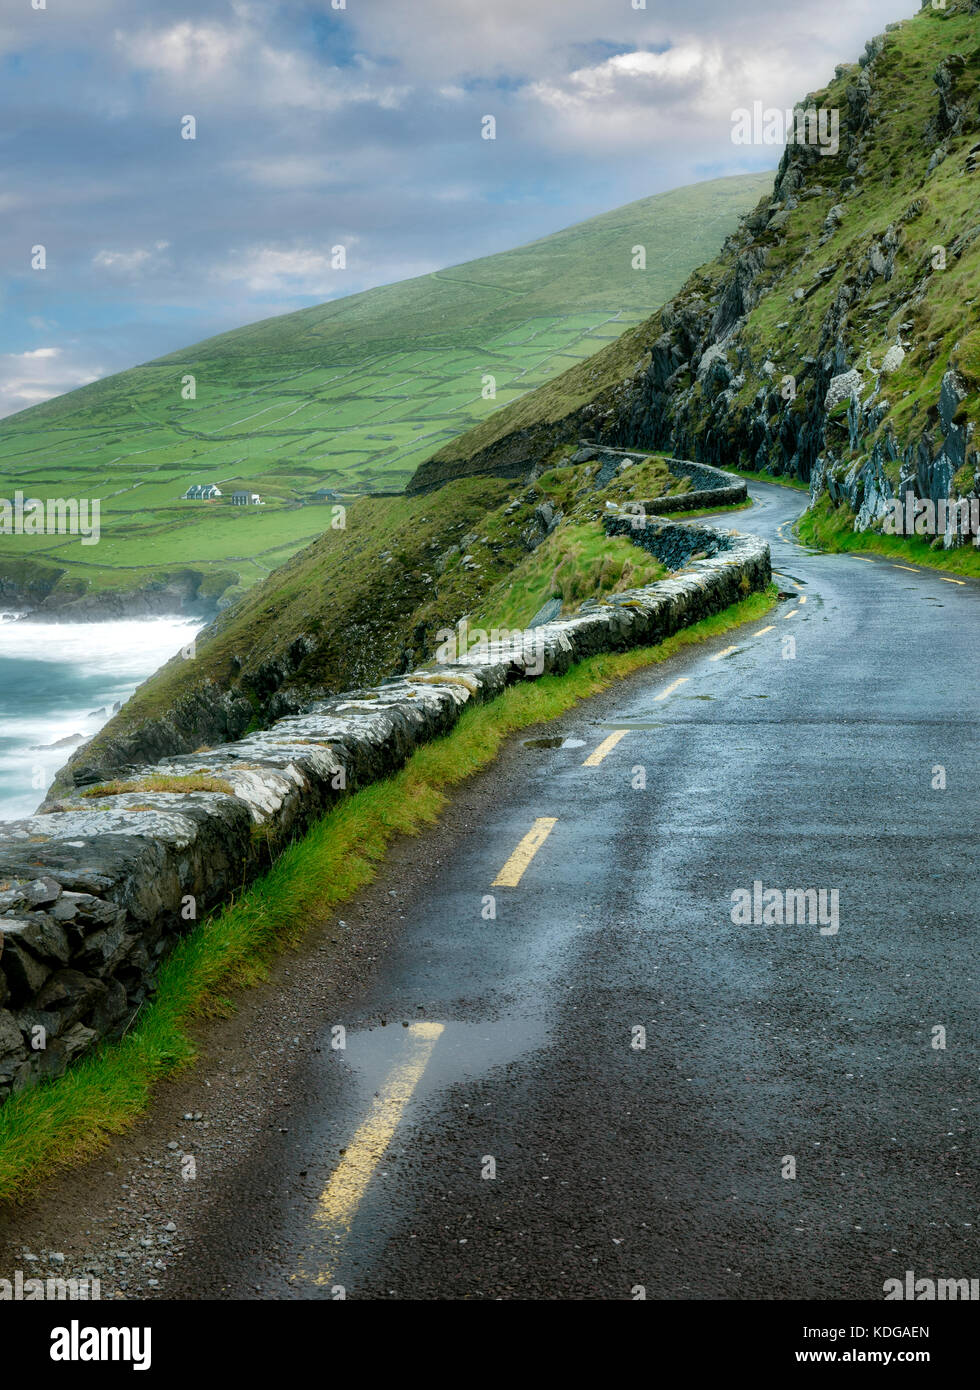 Slea head road. contea di Kerry, Irlanda Immagini Stock